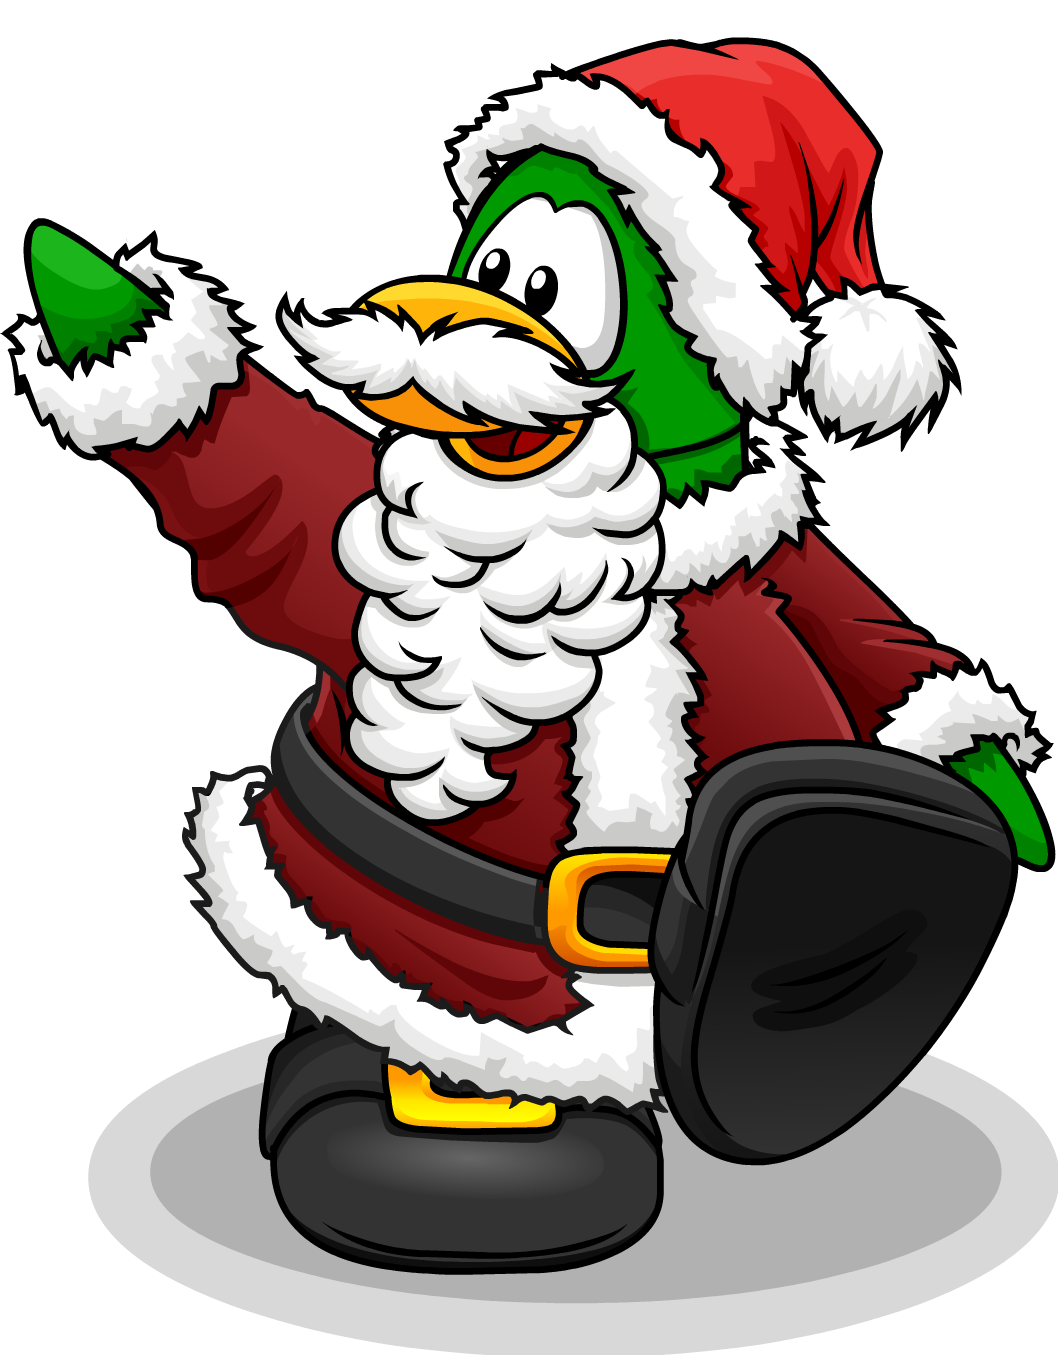 christmas club penguin pookie wiki fandom powered by wikia vote clip art christian vote clip art 3